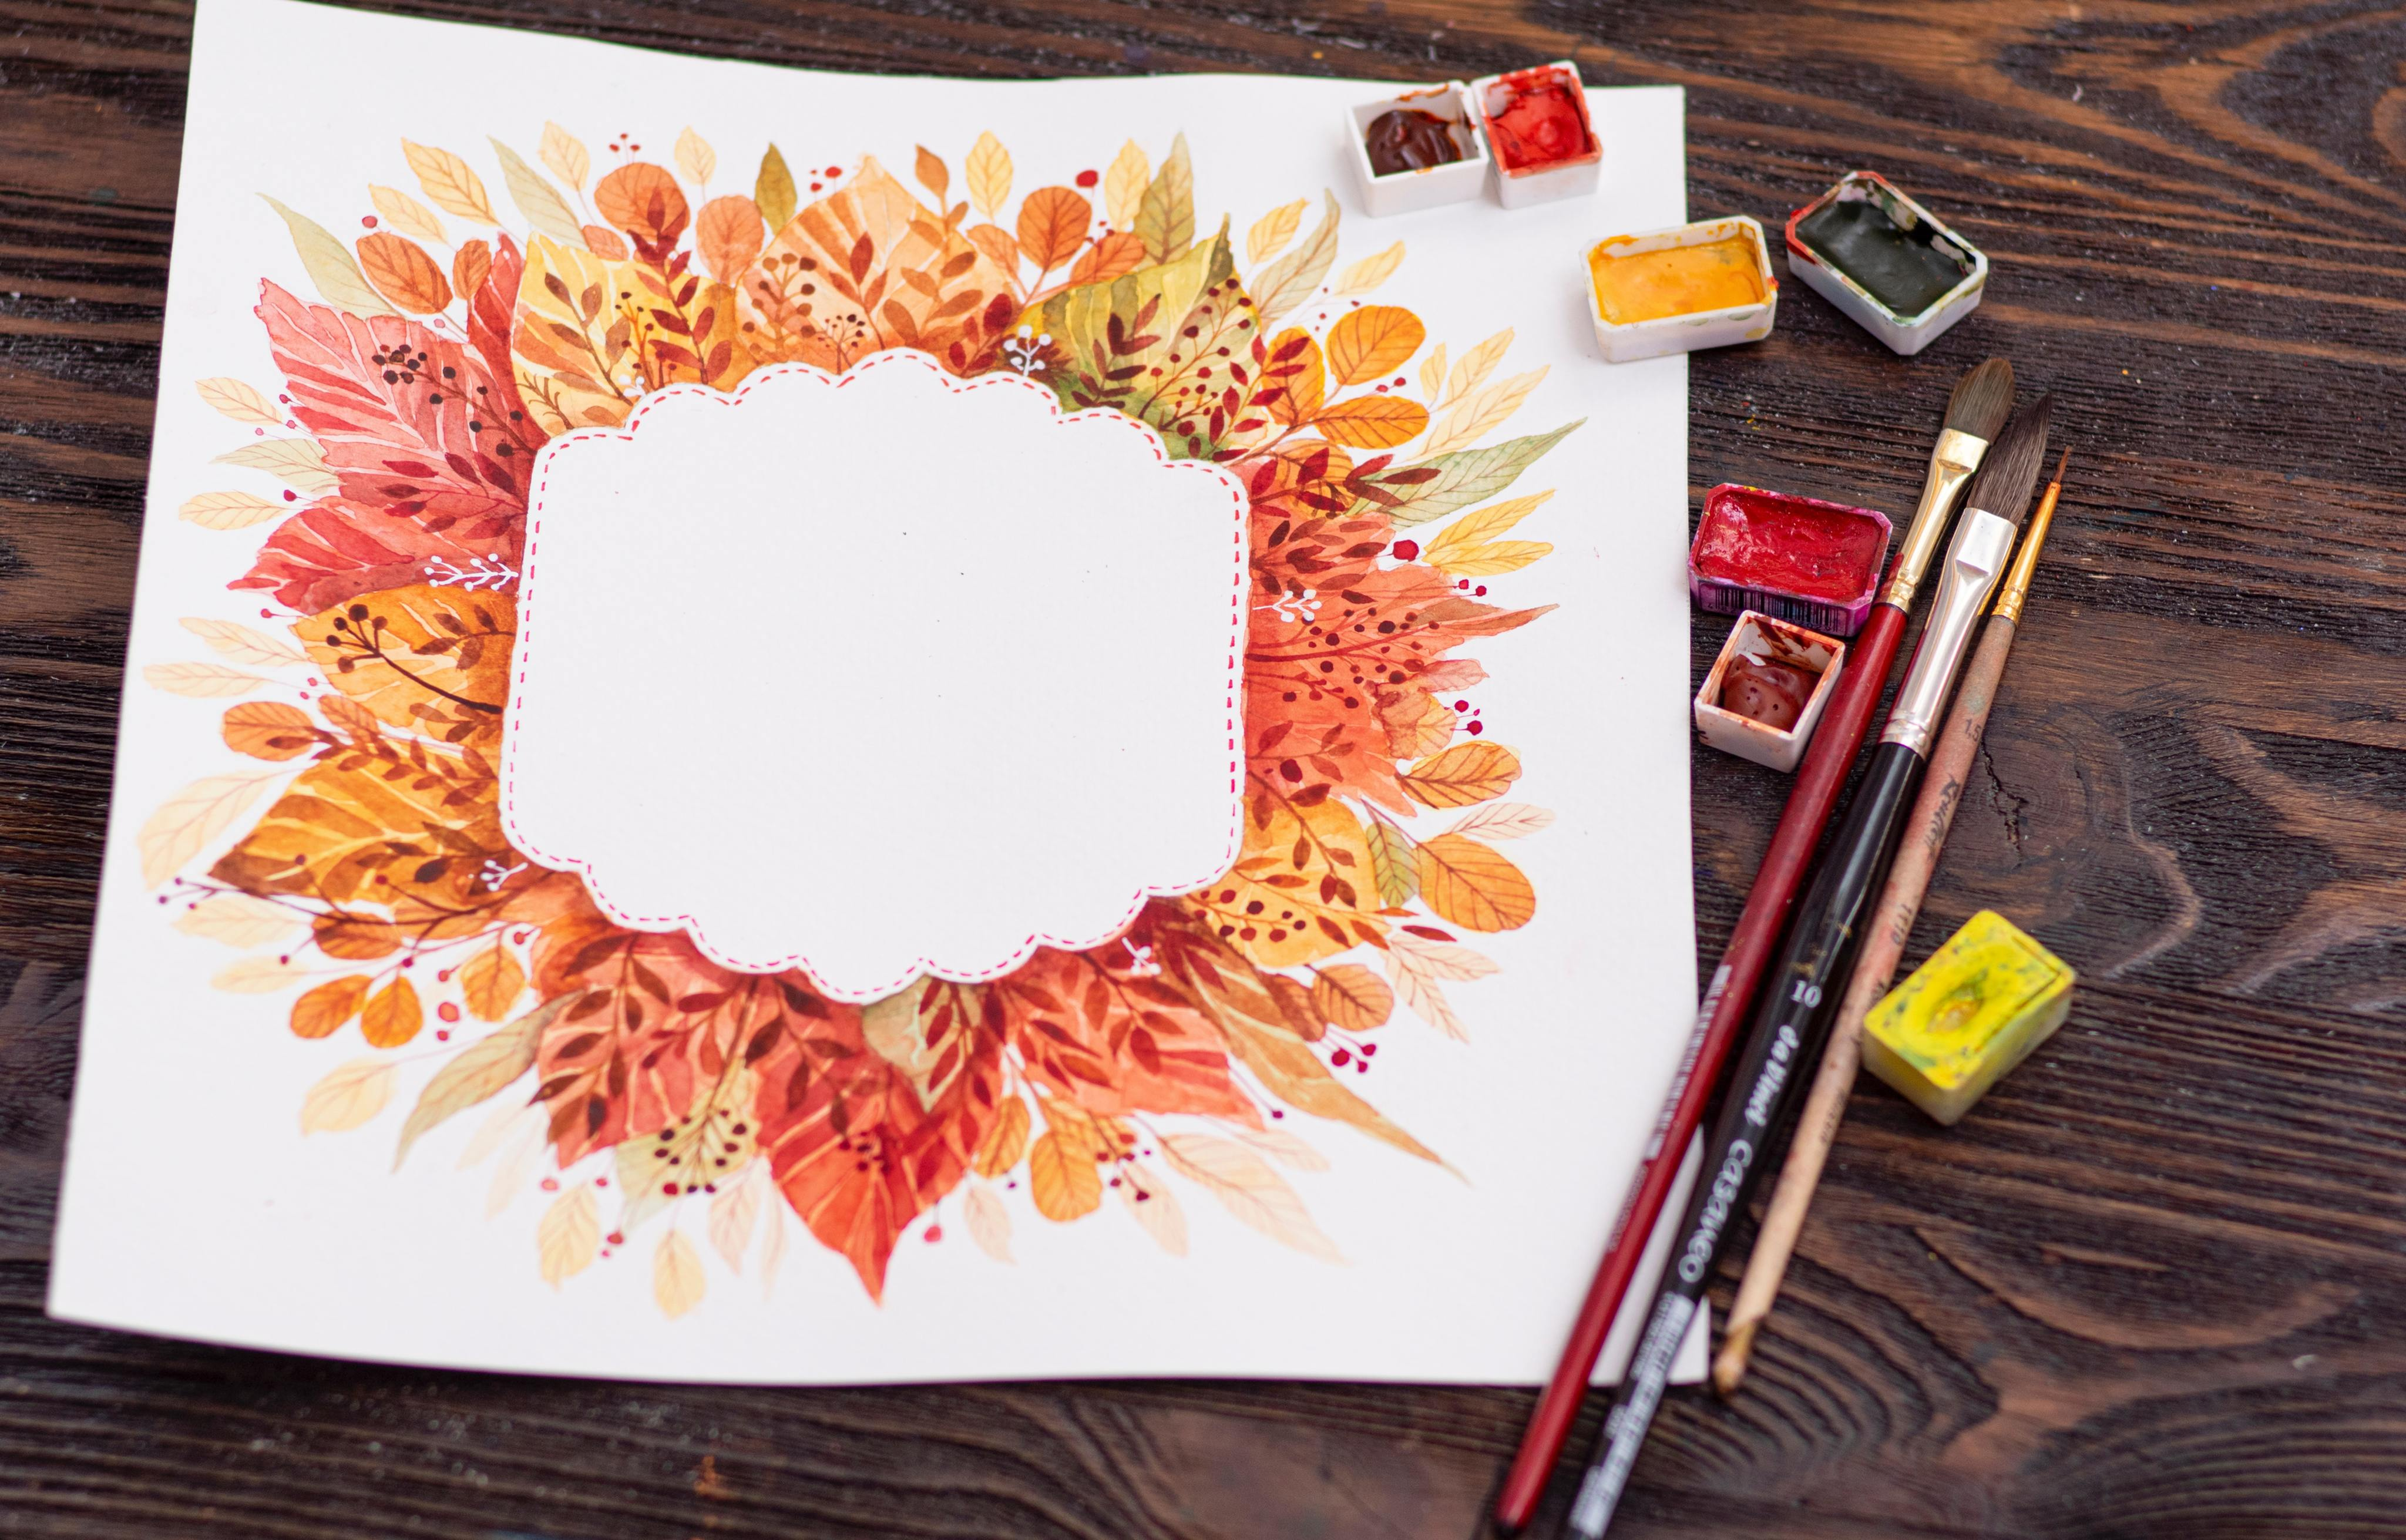 Easy Crafts for Indoor Autumn Home Decorations-image